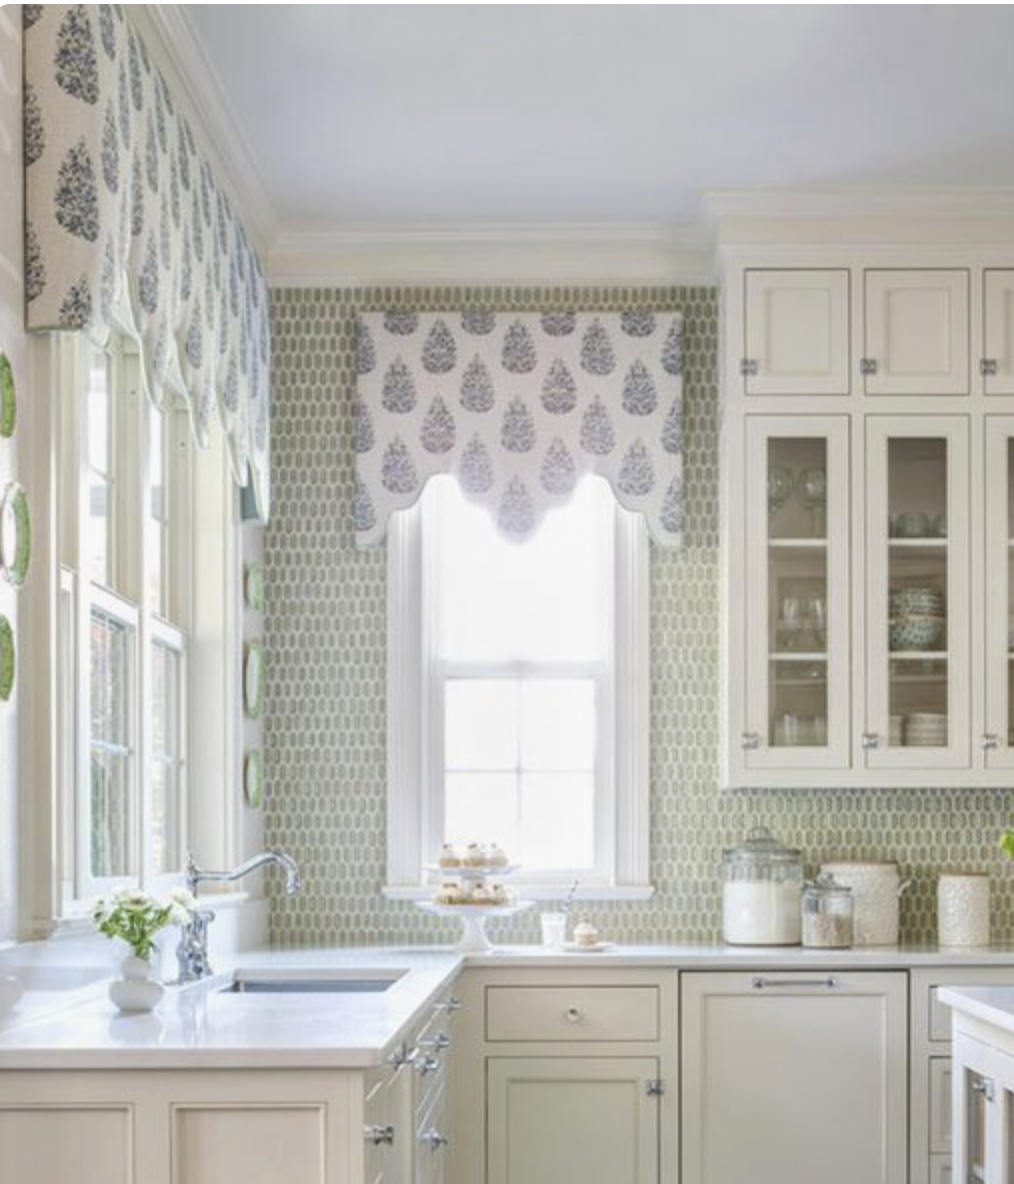 Kitchen Window Valence Custom Fabric window valance custom length ...